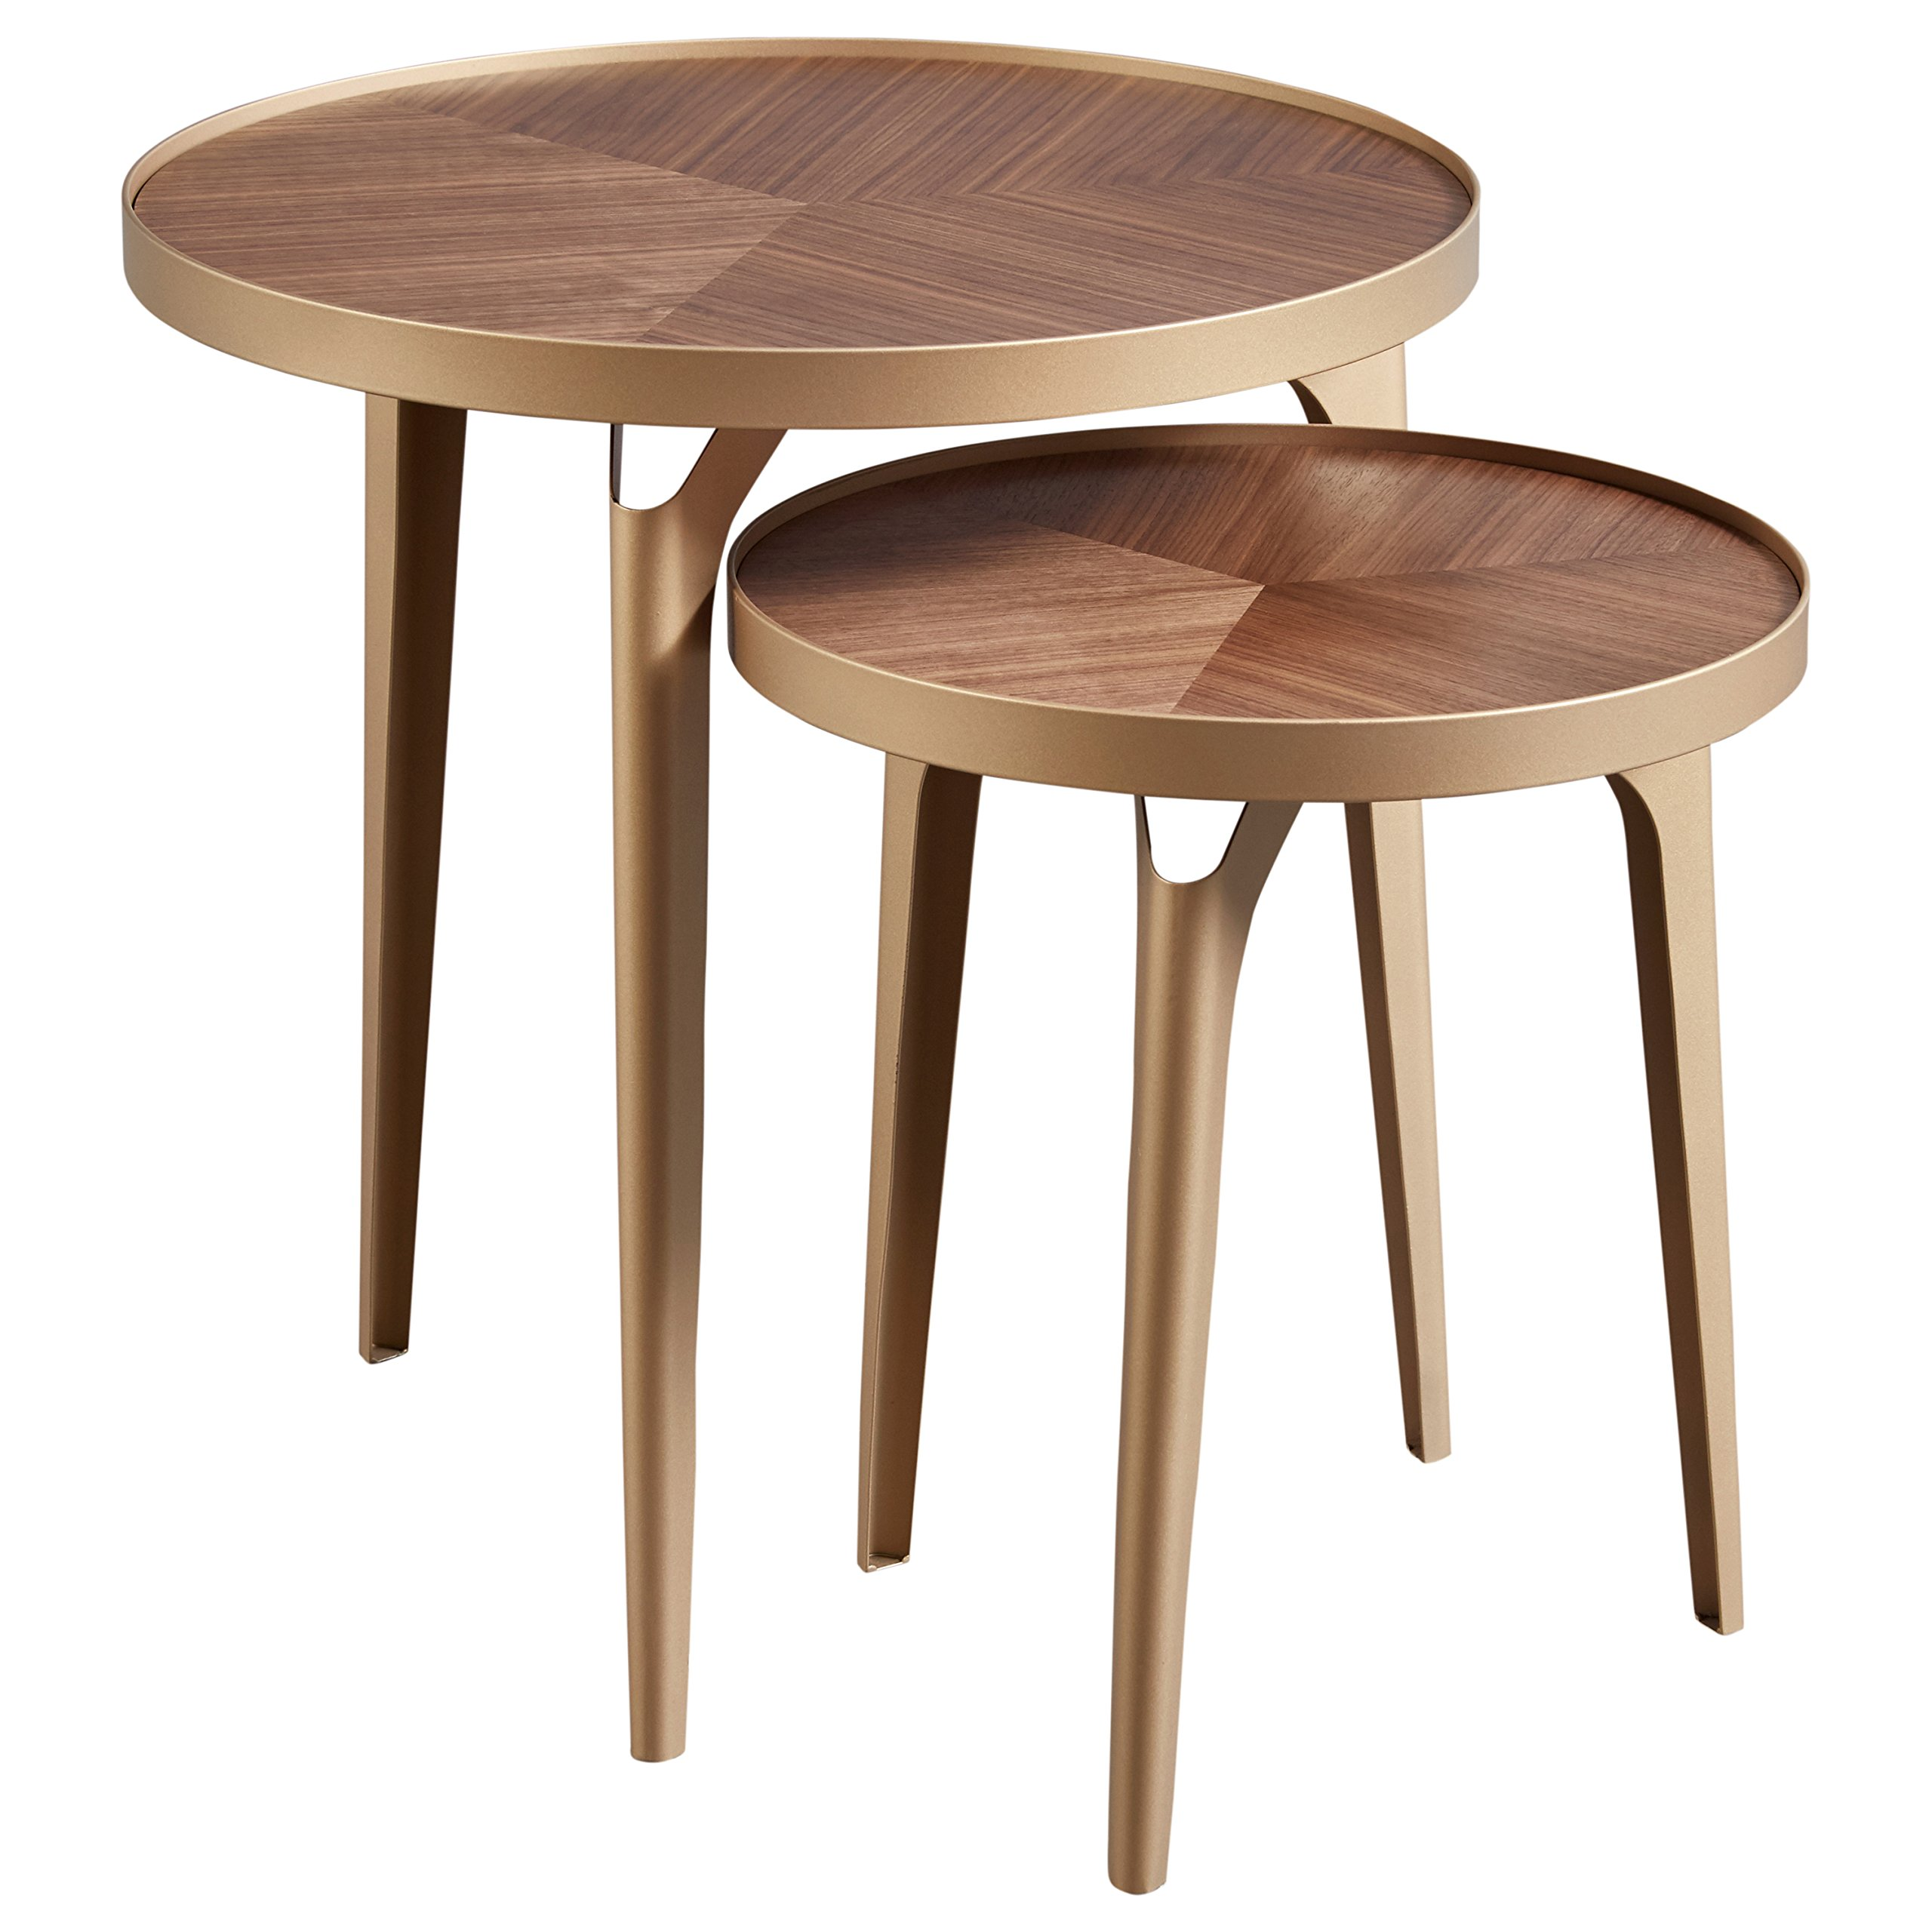 Rivet Mid-Century Nesting Metal Side Table, Set of 2, Brass and Walnut by Rivet